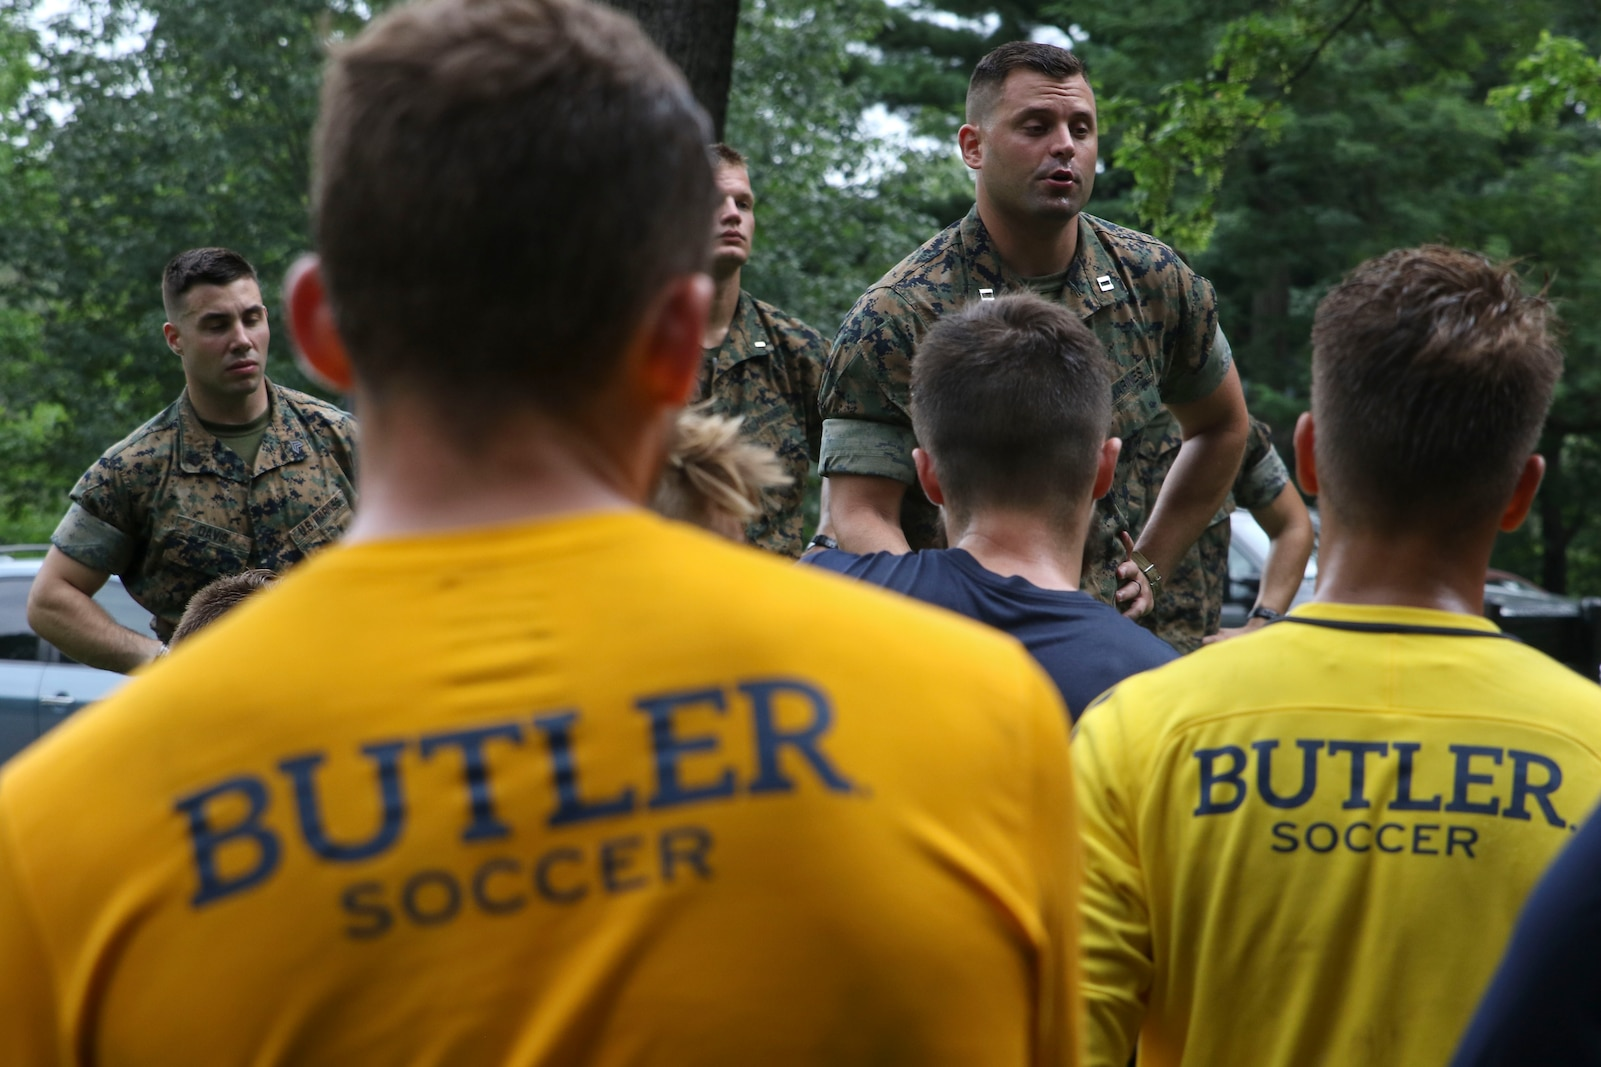 INDIANAPOLIS - Marine Corps Officer Candidates School candidates and Butler University men's soccer team participate in a leadership and cohesion exercise August 15, 2018, at the Fort Harrison State park in Indianapolis. The training allowed the students from the university to experience physical training the Marine Corps way and allowed the Marines to share their leadership style. The exercise also allowed the teams to build cohesion amongst each another. (U.S. Marine Corps photos by Sgt. Carl King)